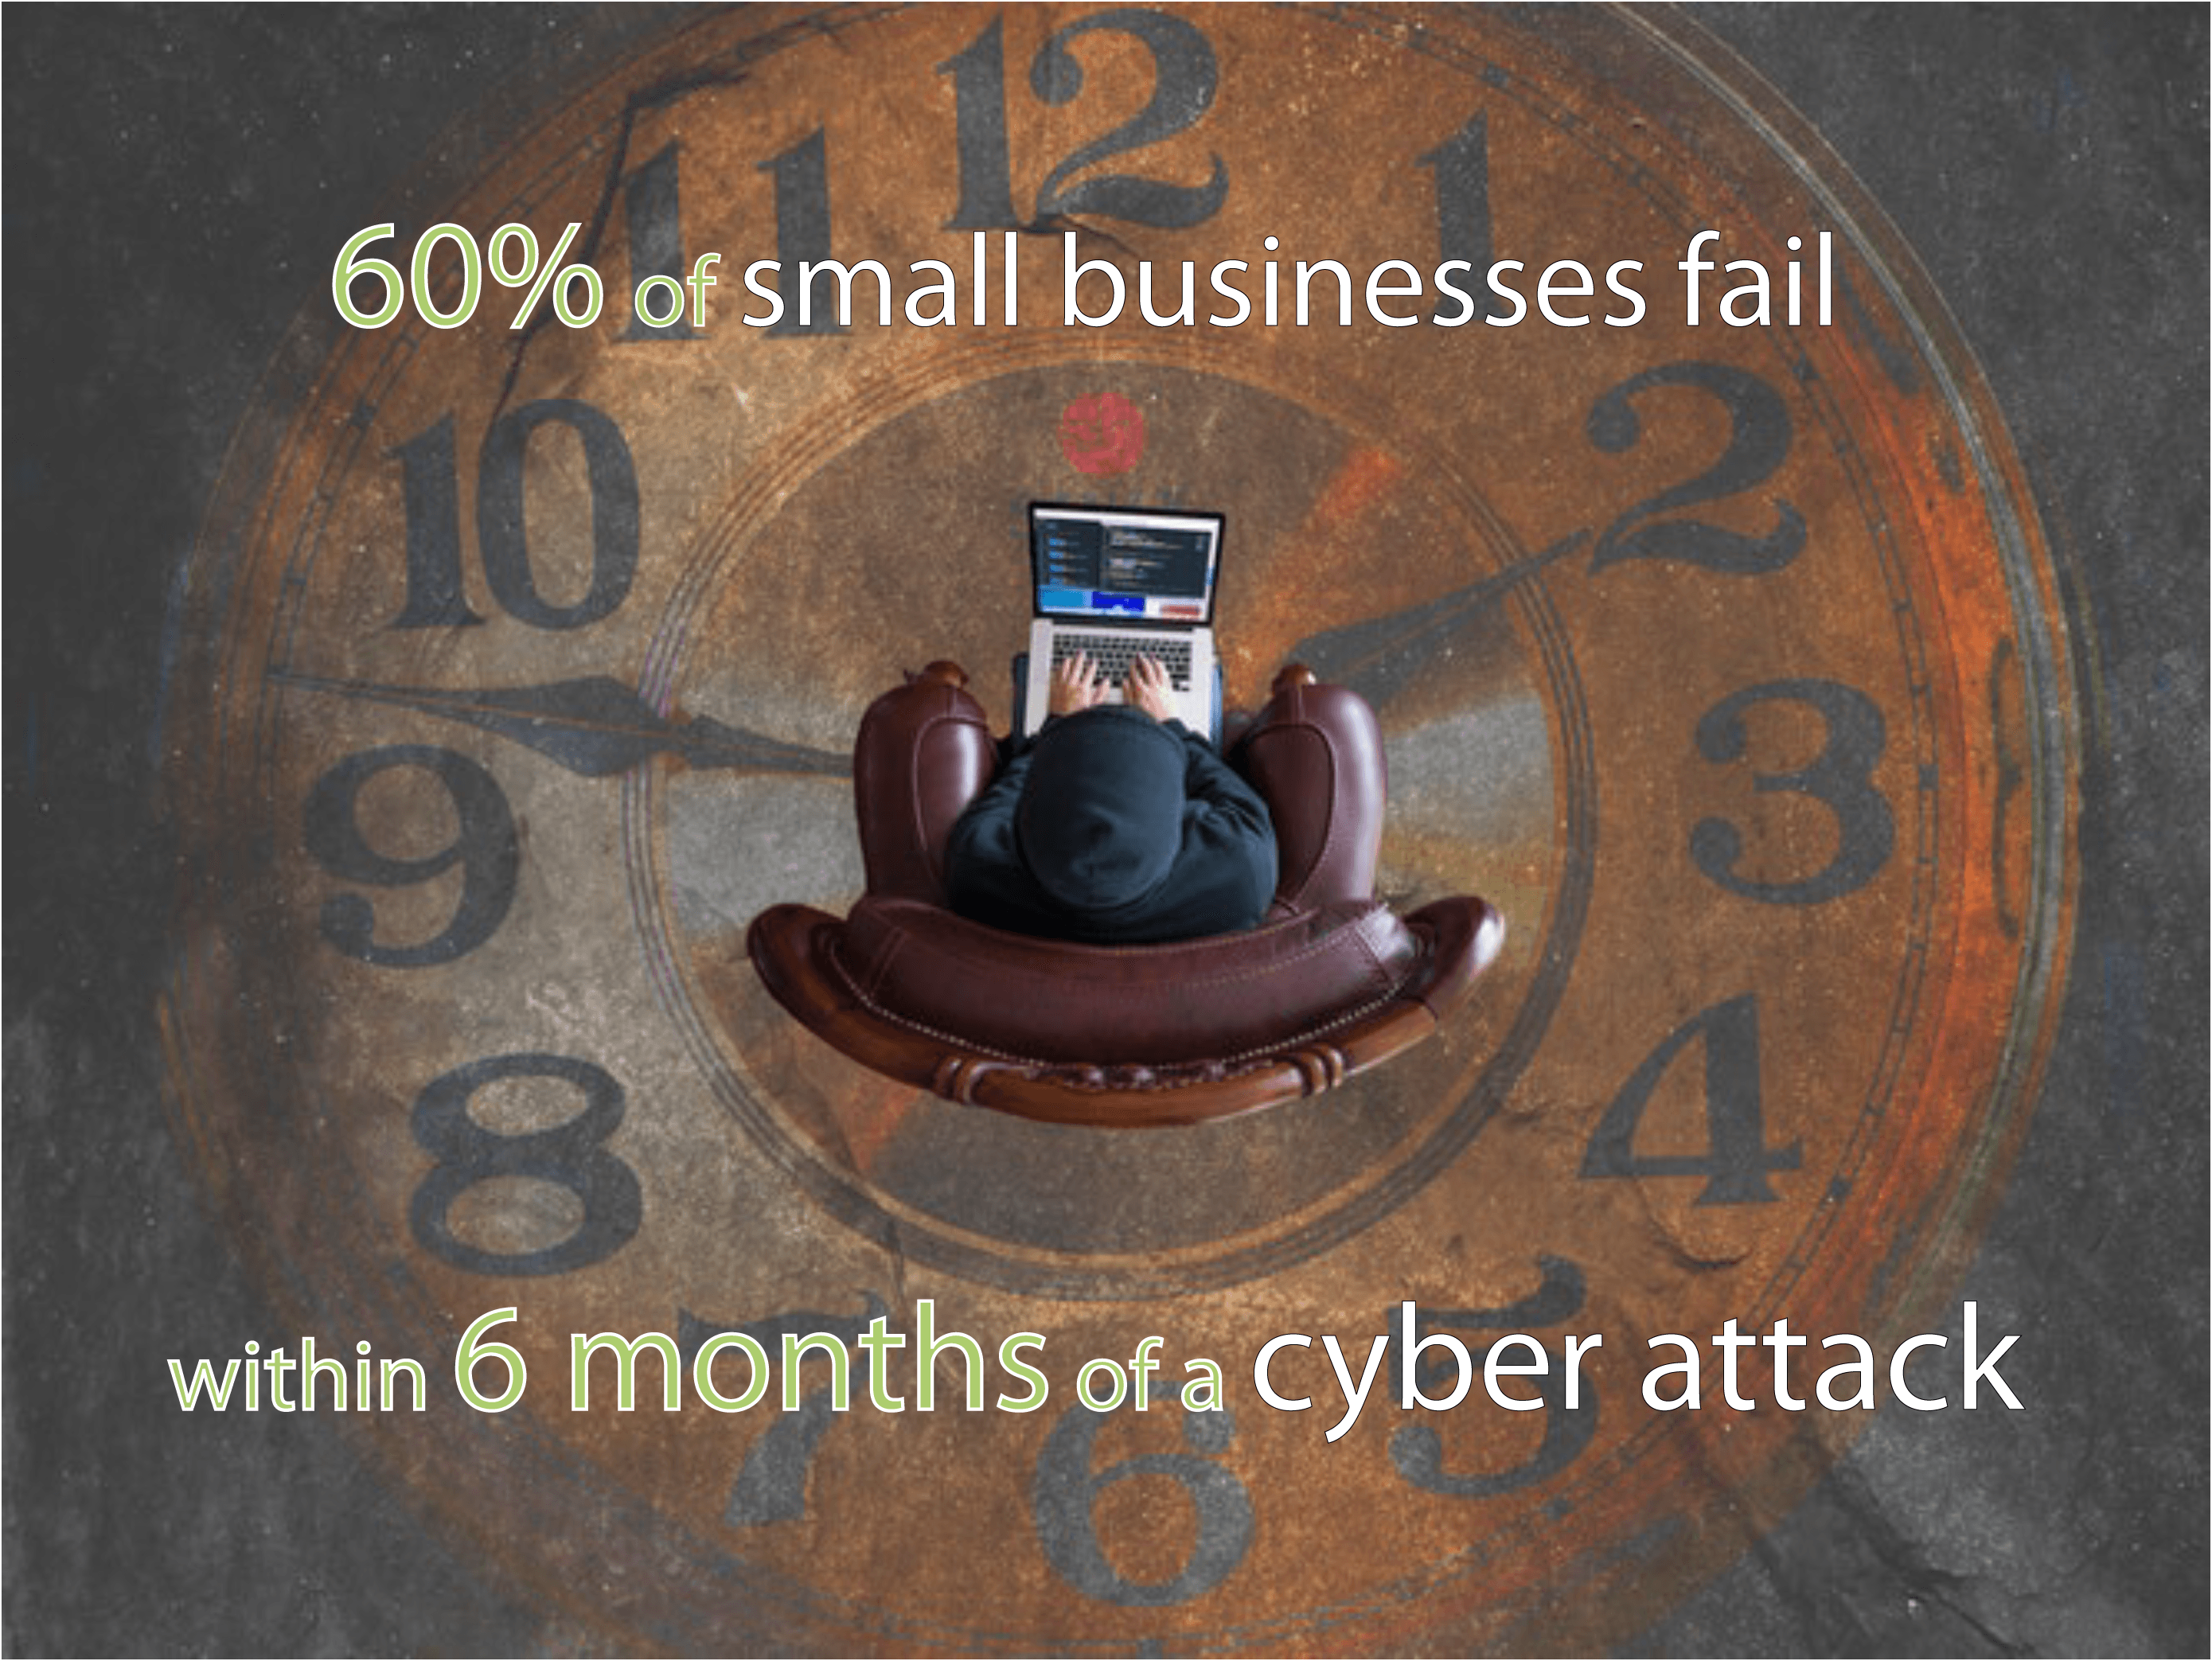 computer programmer or hacker sitting on clock face with laptop 60% of small businesses fail within 6 months of a cyber attack